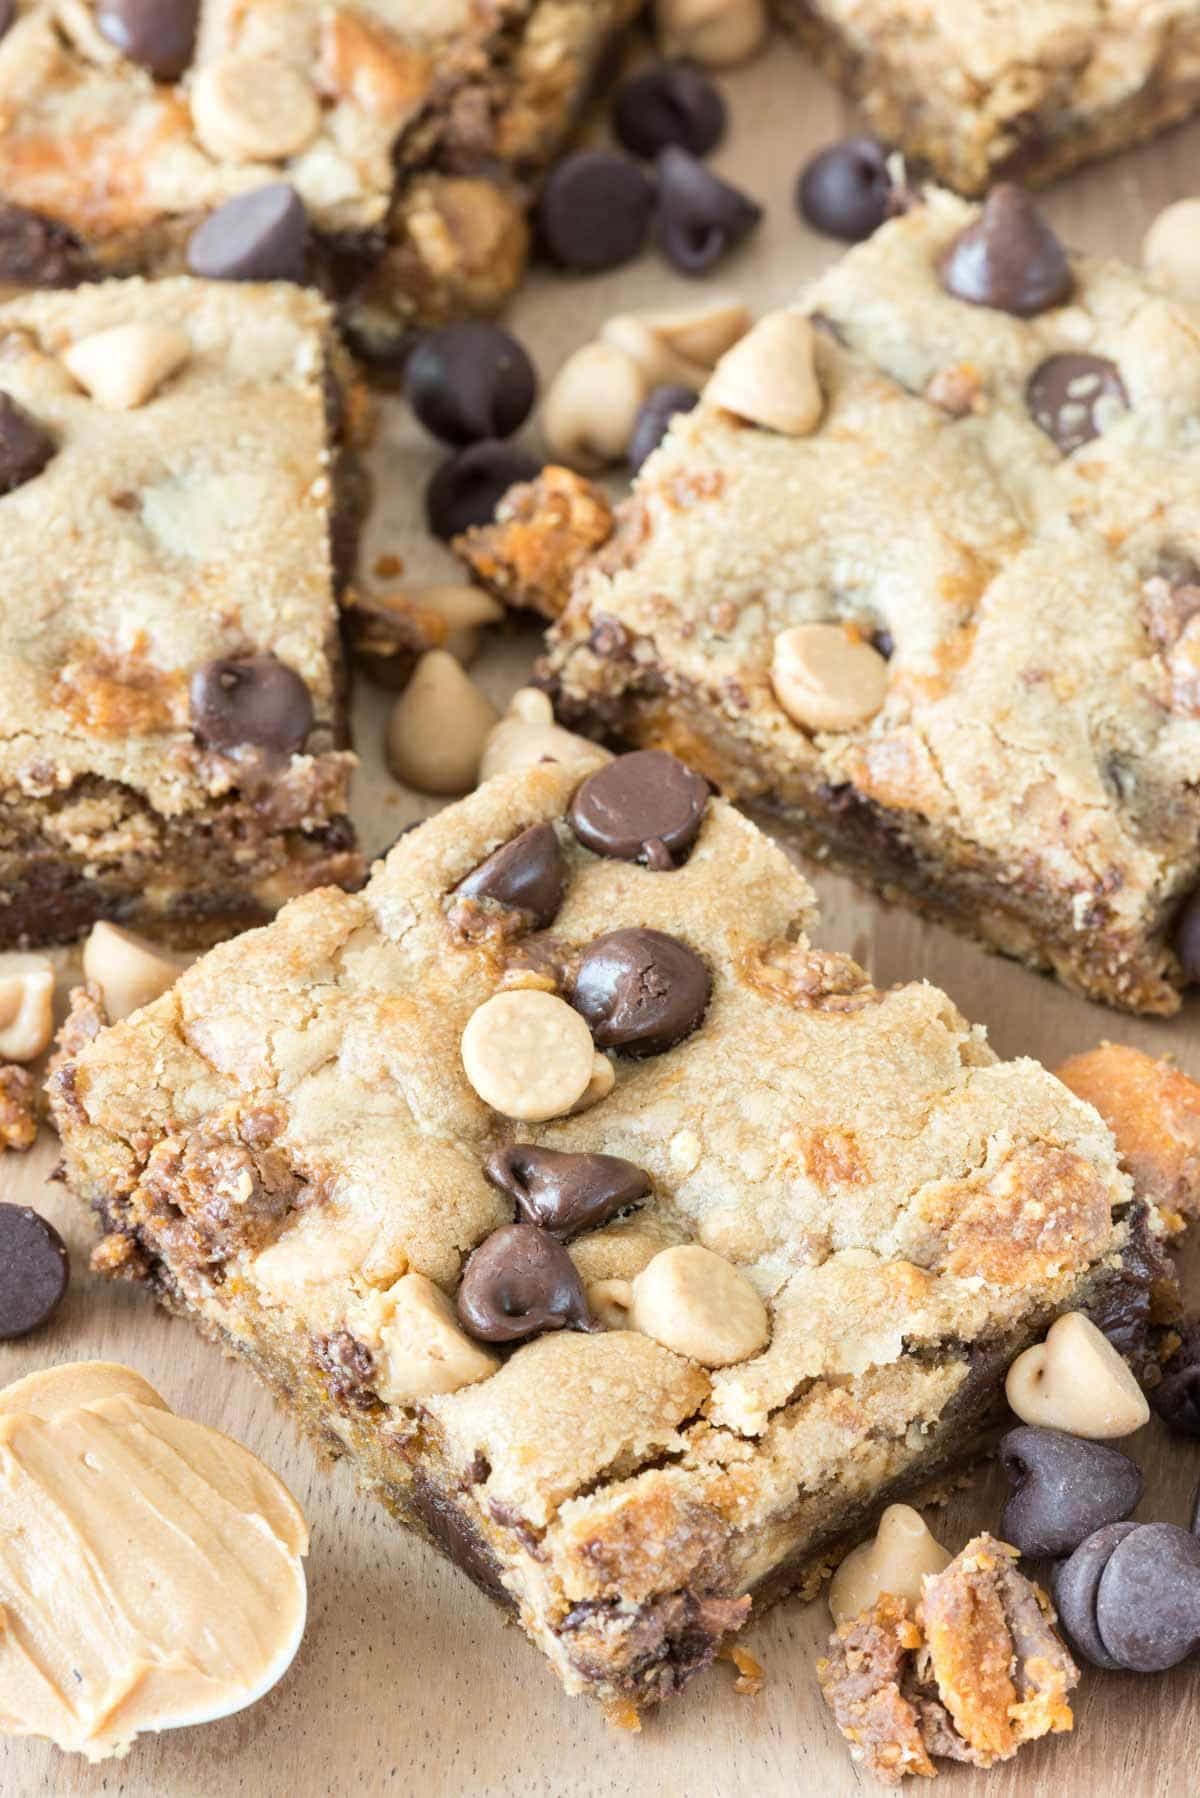 Triple Threat Peanut Butter Cookie Bars Recipe with peanut butter, peanut butter chips, Butterfingers, and chocolate!